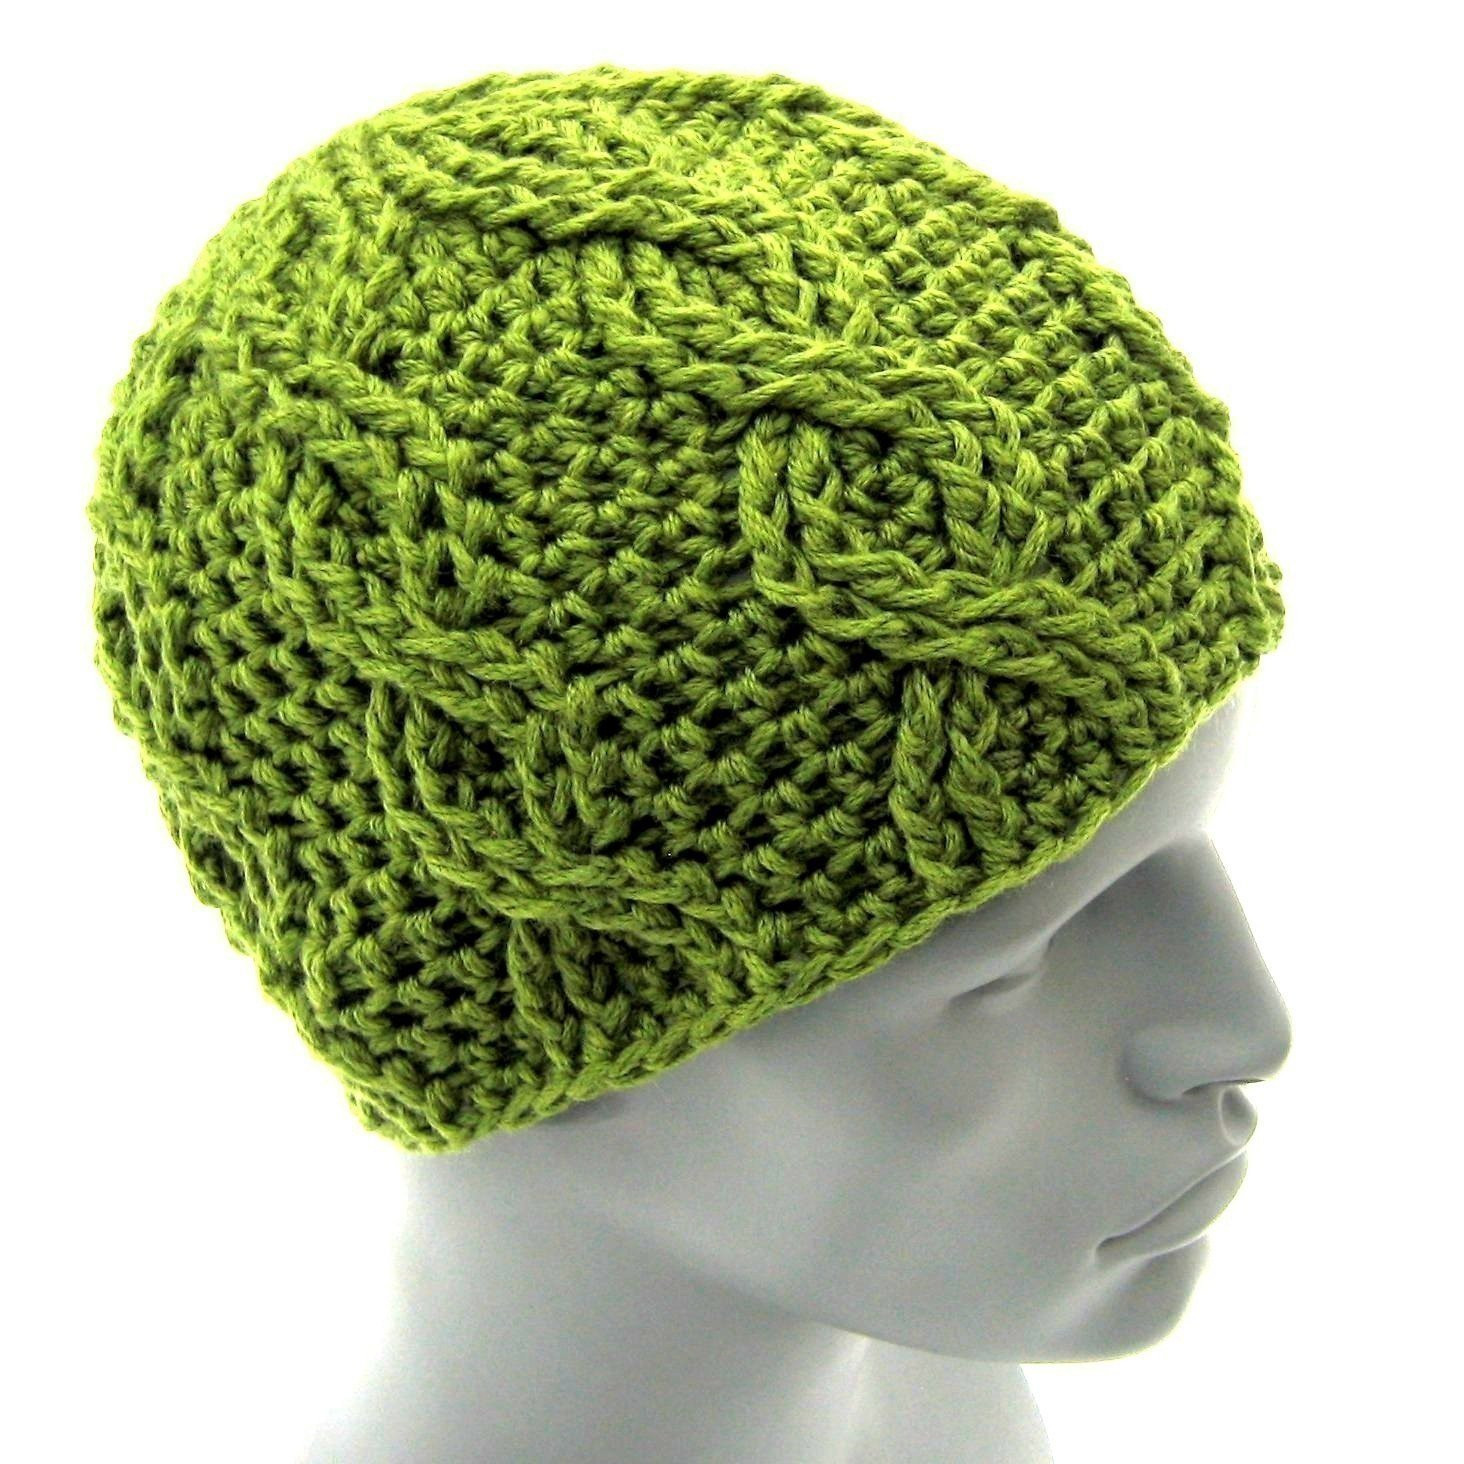 Crochet Cables Unique Cable Beanie Crochet Pattern Of Amazing 48 Pics Crochet Cables